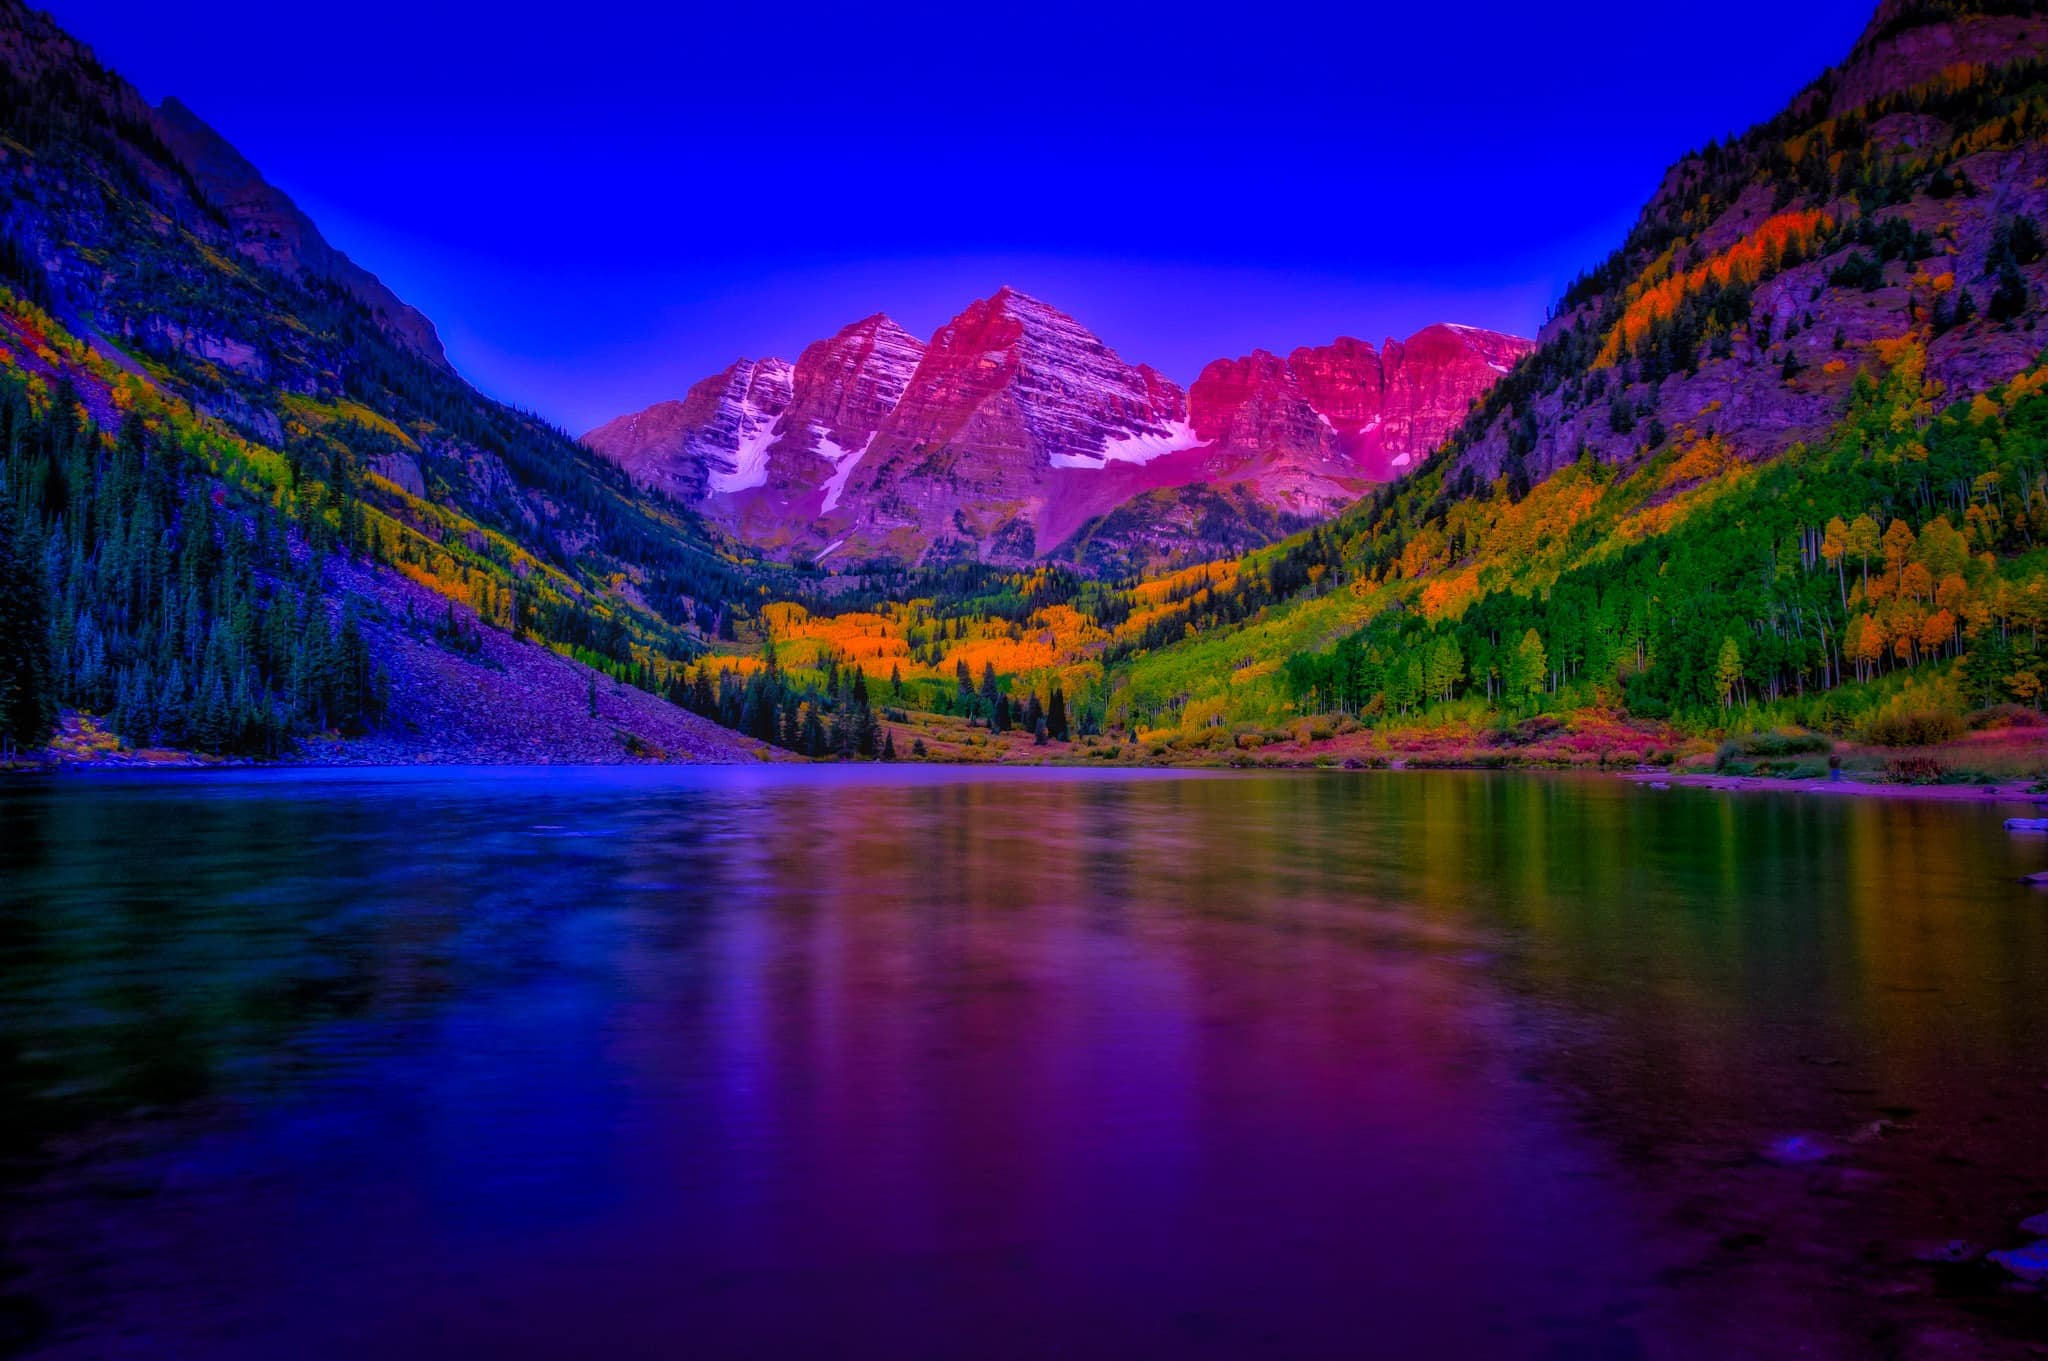 Magenta morning light kisses the Maroon Bells just before dawn in the Maroon Bells Recreation Area near Aspen, Colorado.